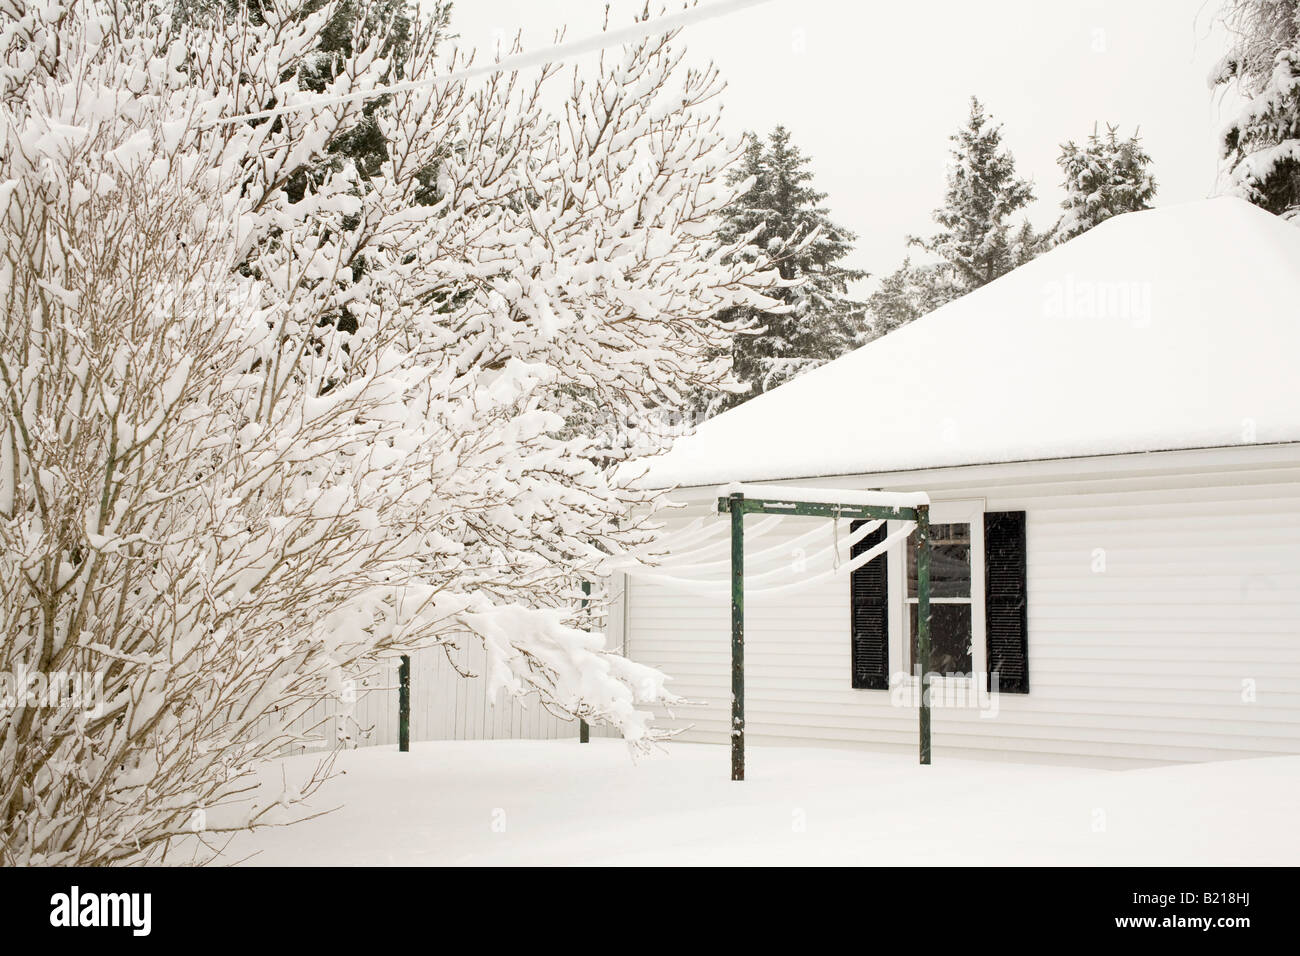 fresh snow covers the backyard clothesline and garage stock photo